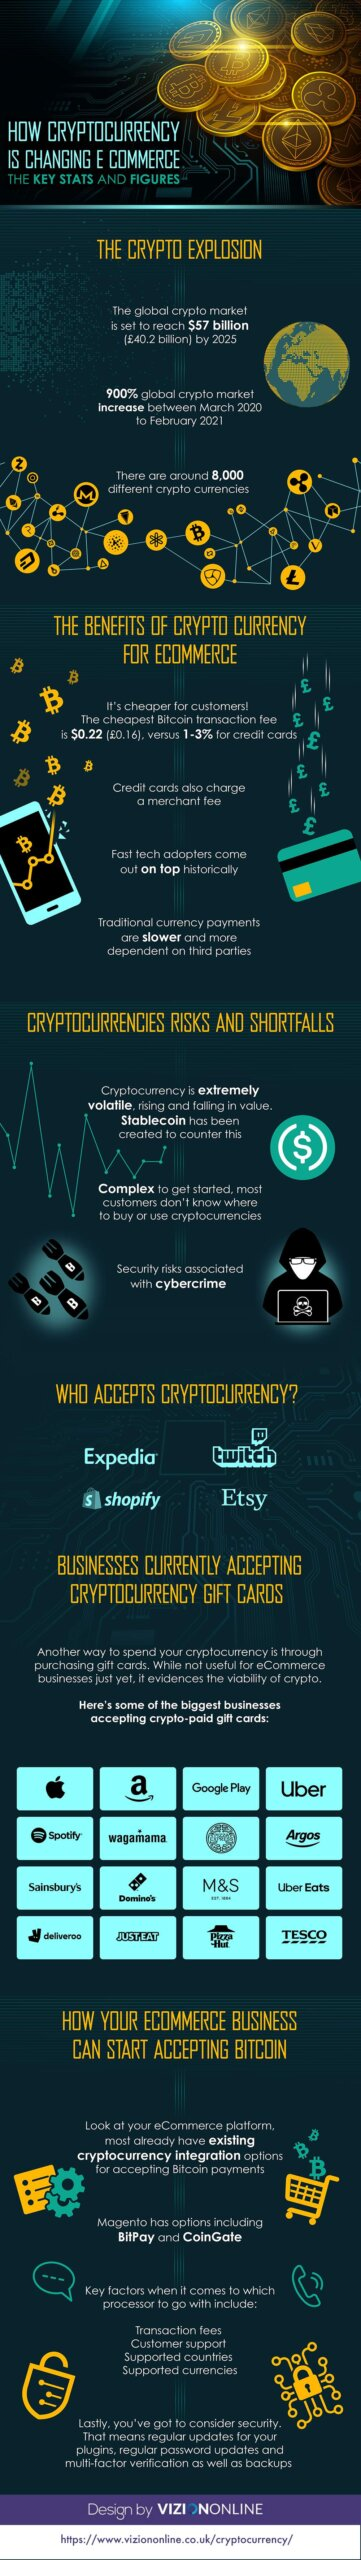 Cryptocurrency Is Changing eCommerce